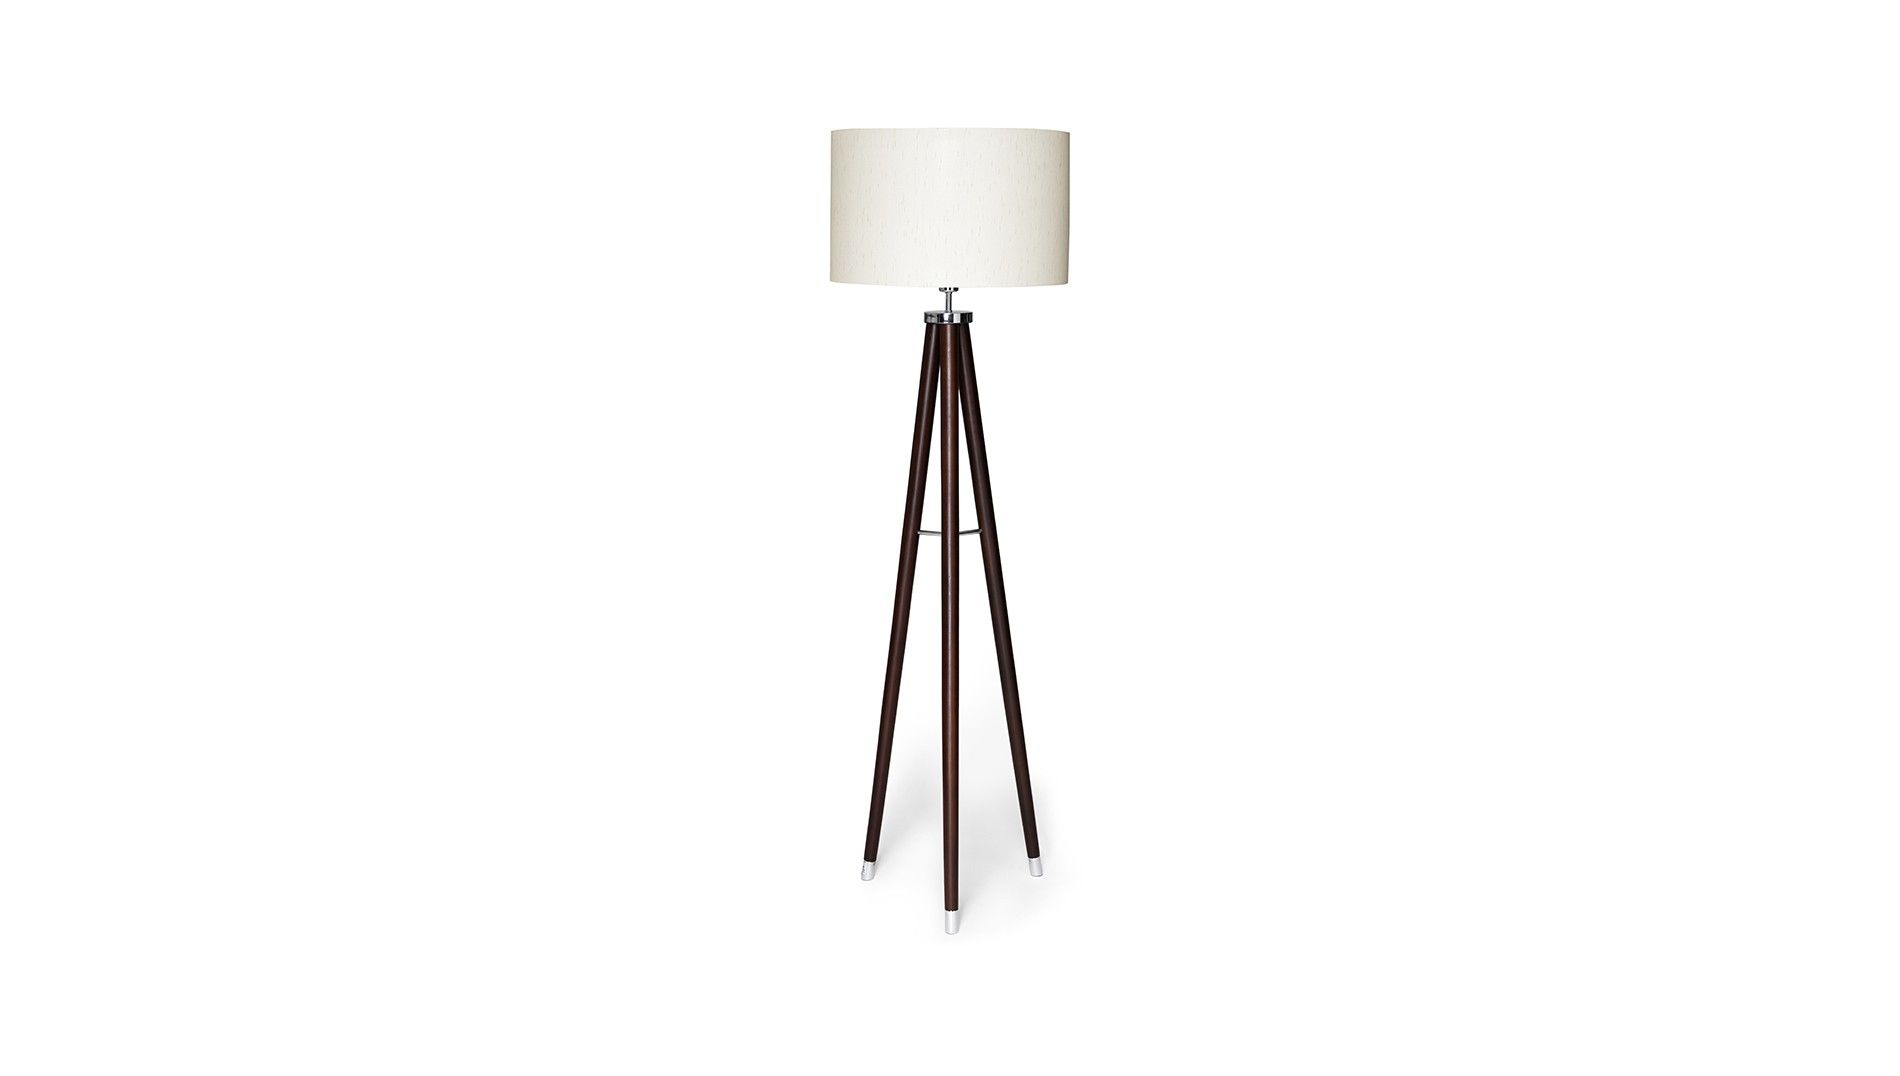 Tripod floor lamp tripod and floor lamp floor lamp geotapseo Image collections